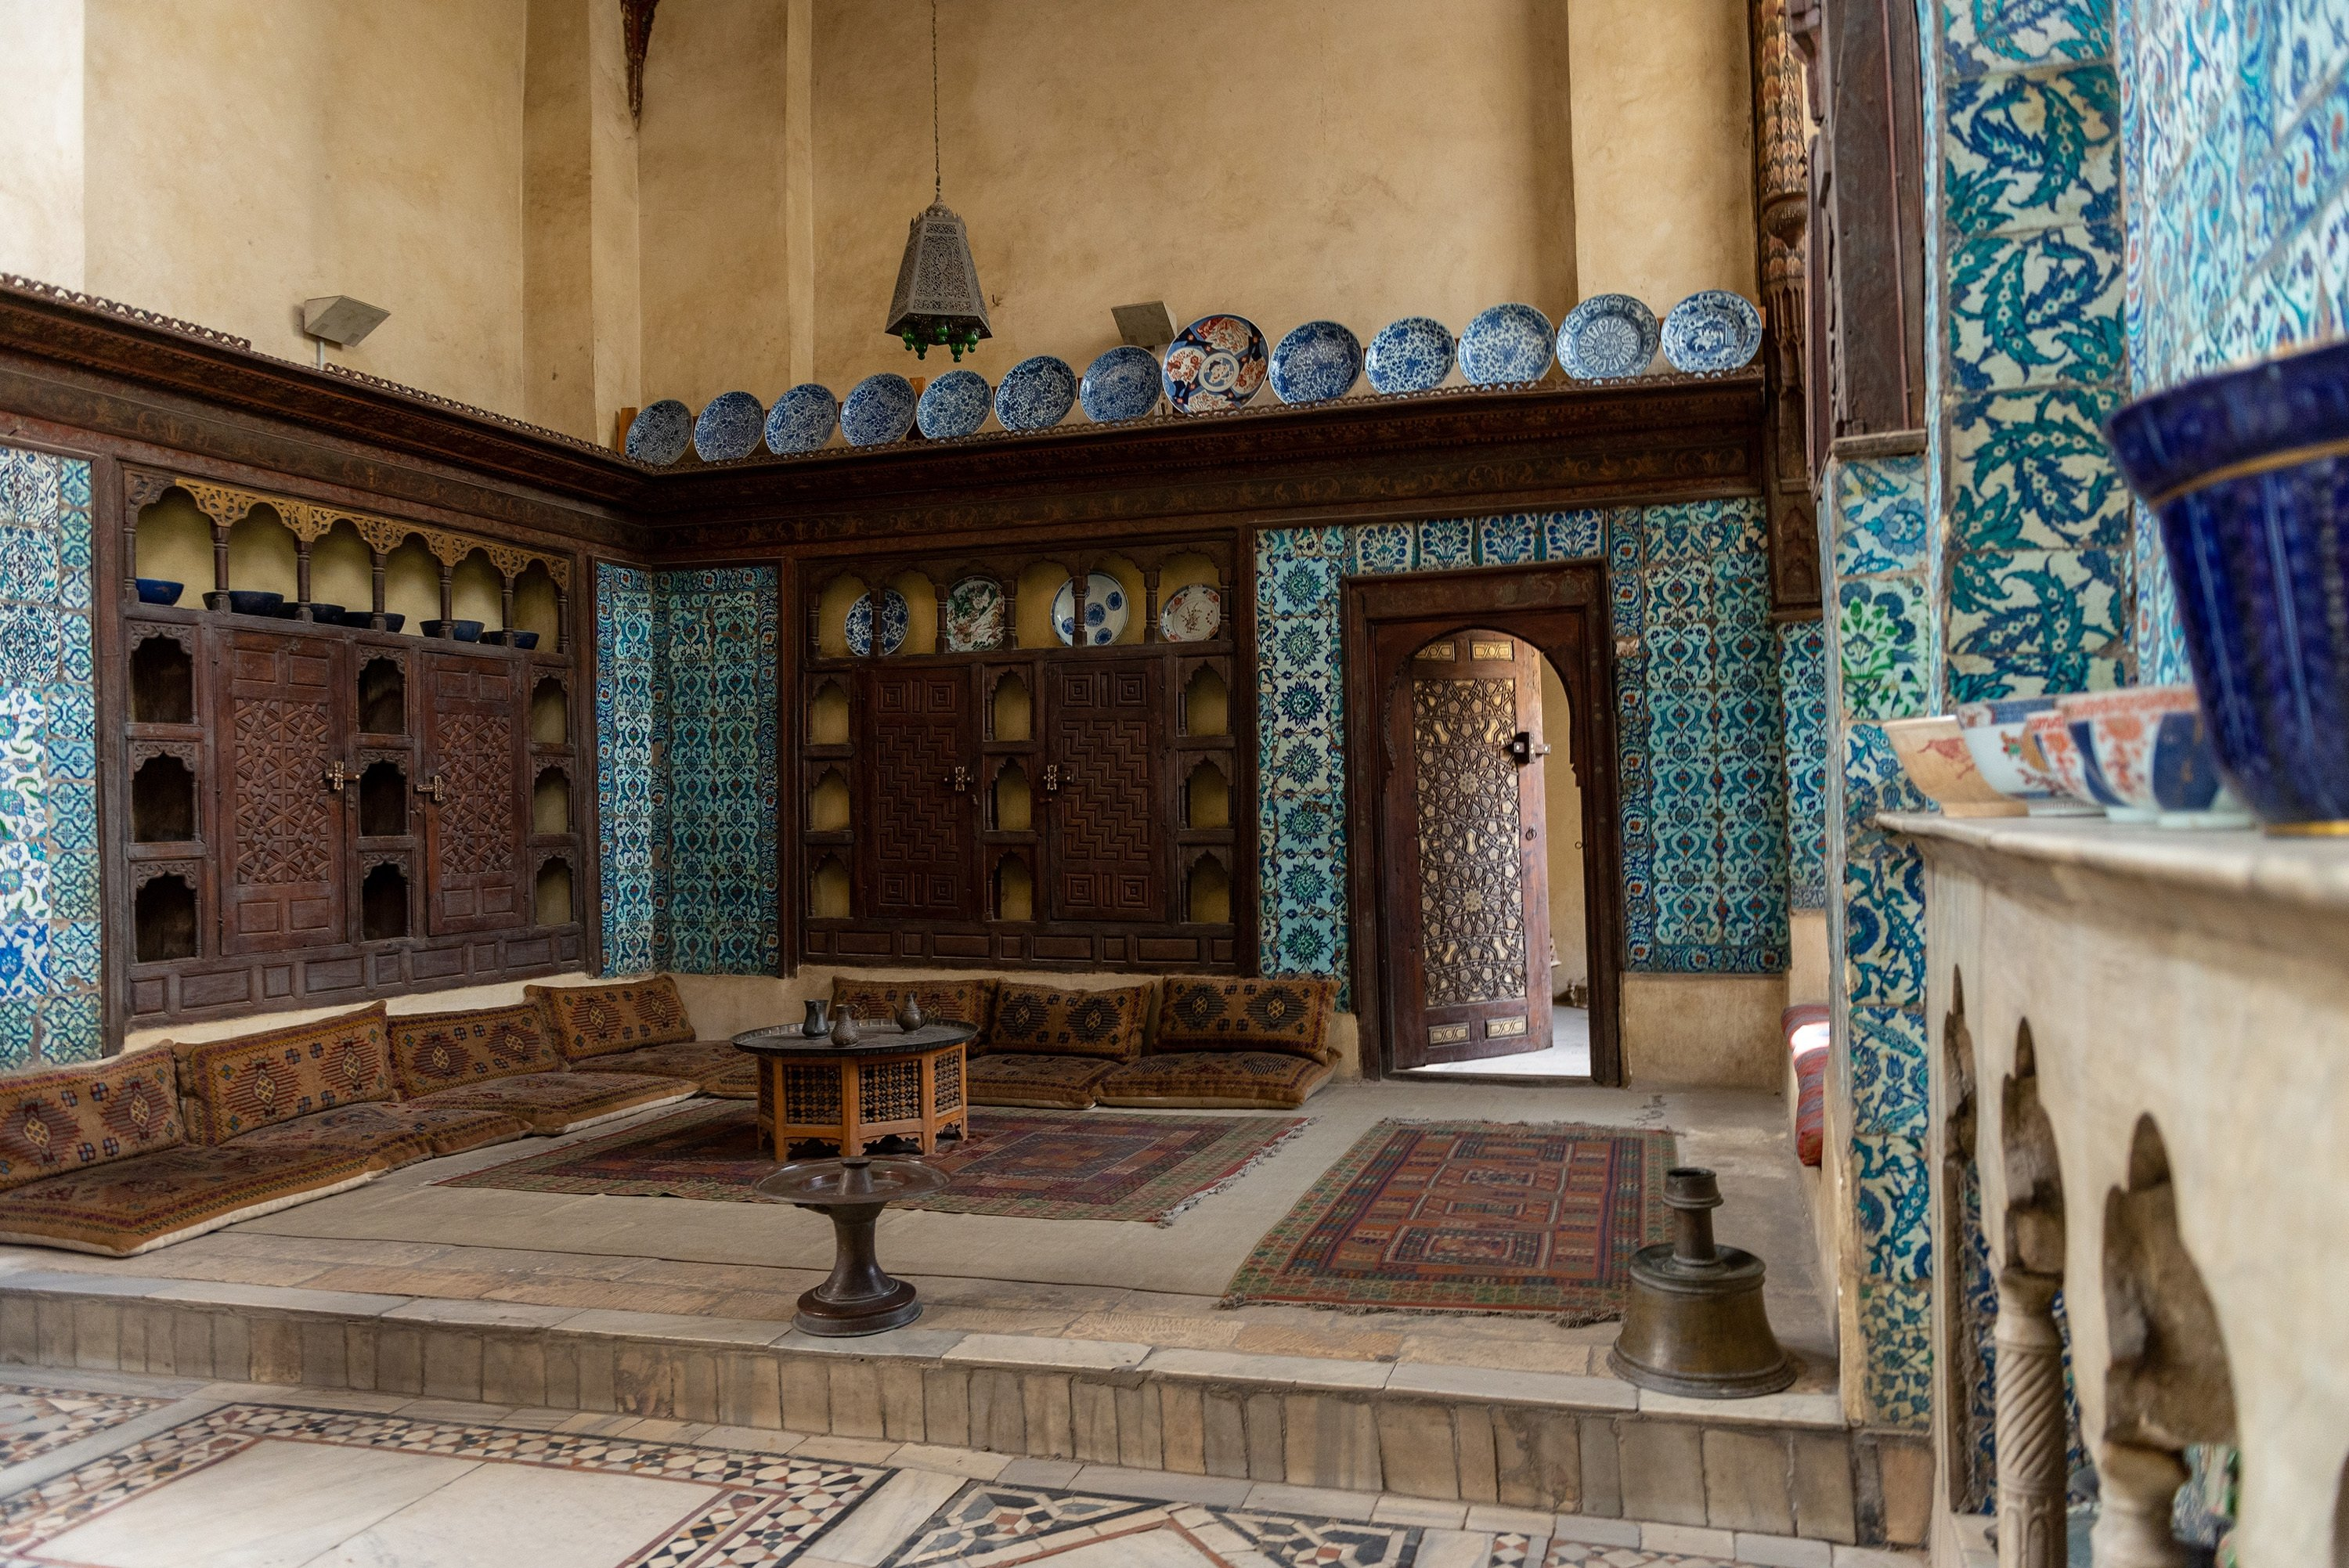 Interior room in the Bayt Al-Suhaymi, an Ottoman era house museum in Cairo, Egypt. (Shutterstcok Photo)